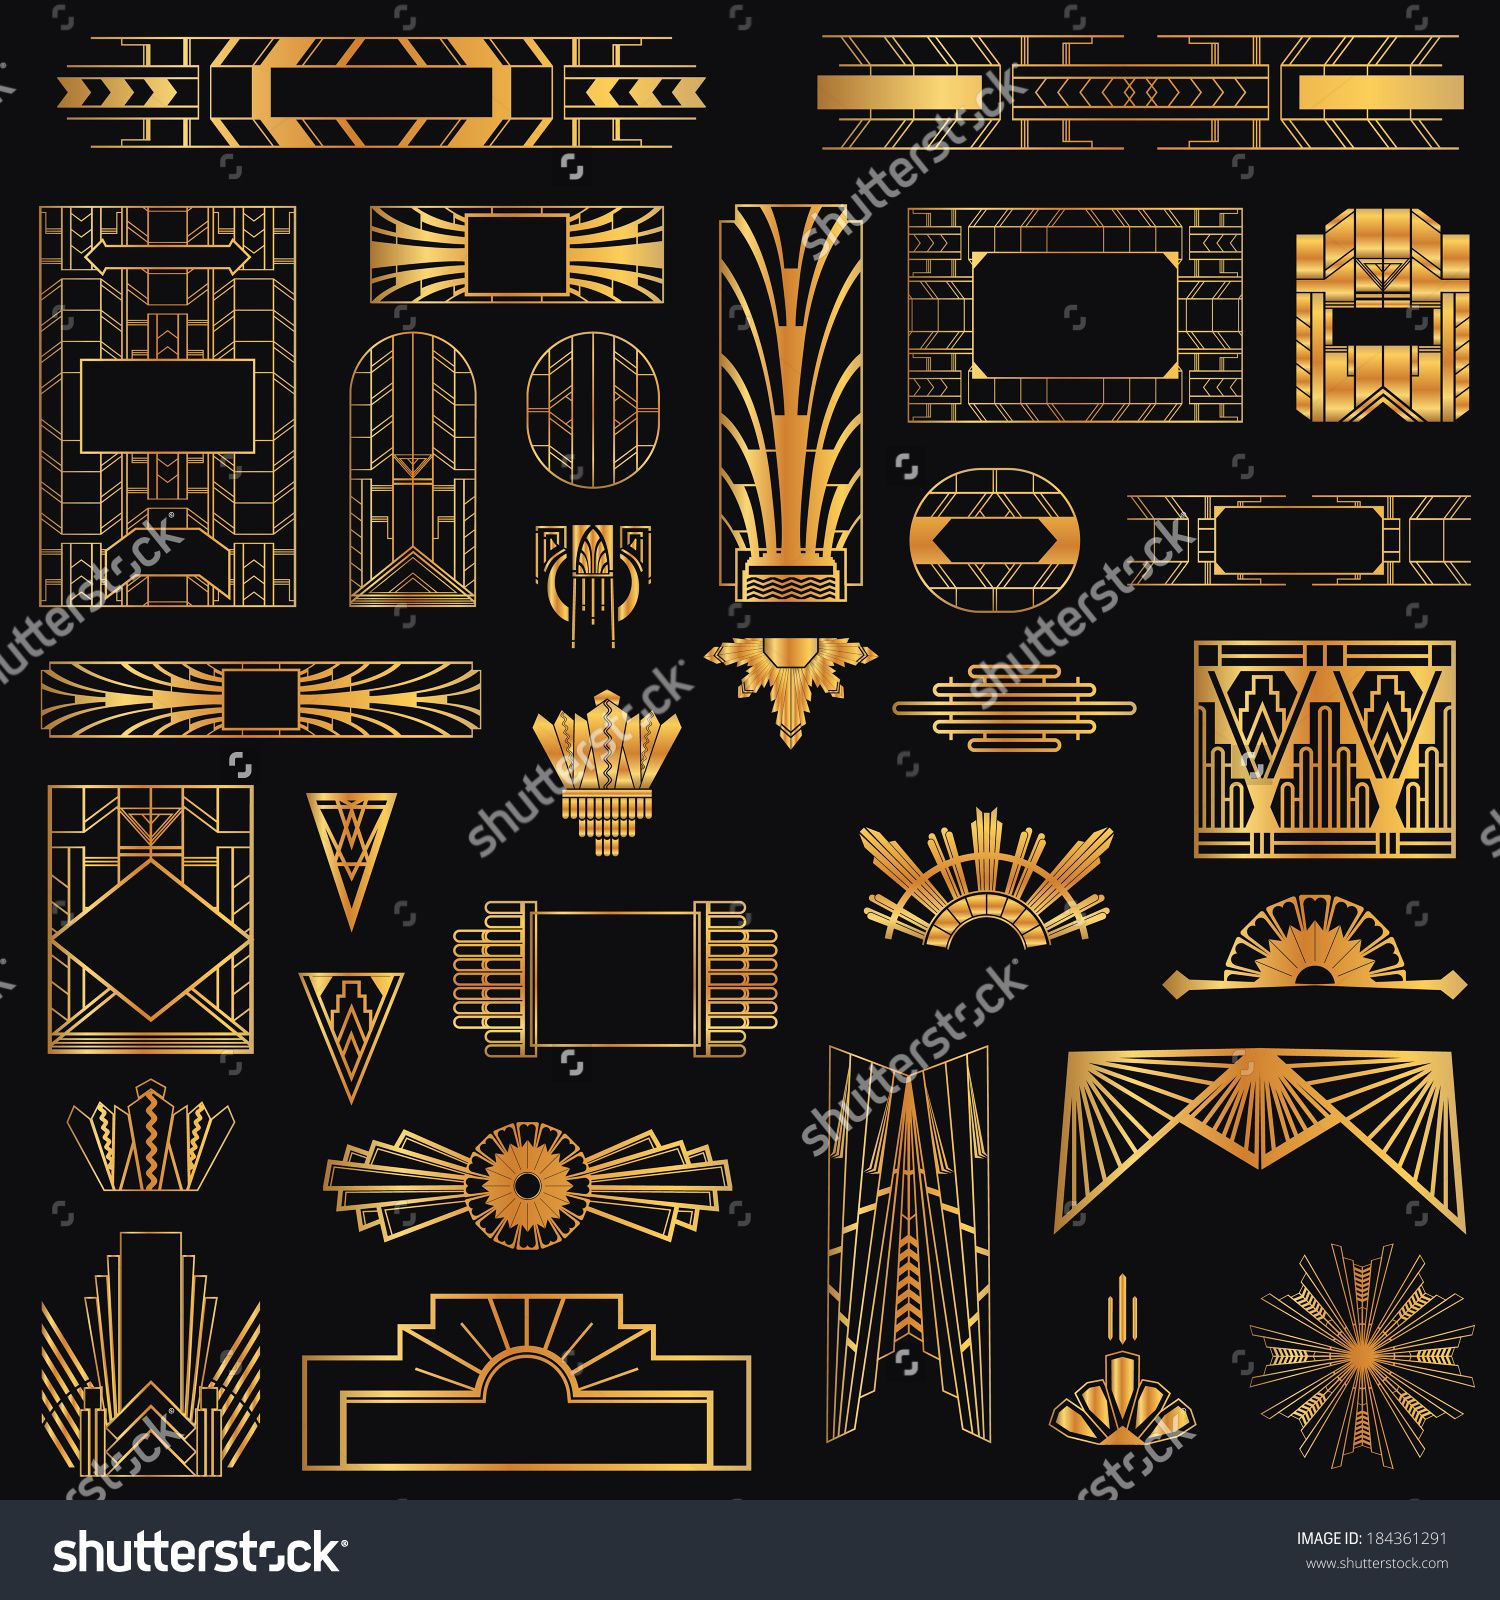 Art deco elements graphic designs google search art for Arts et decoration abonnement